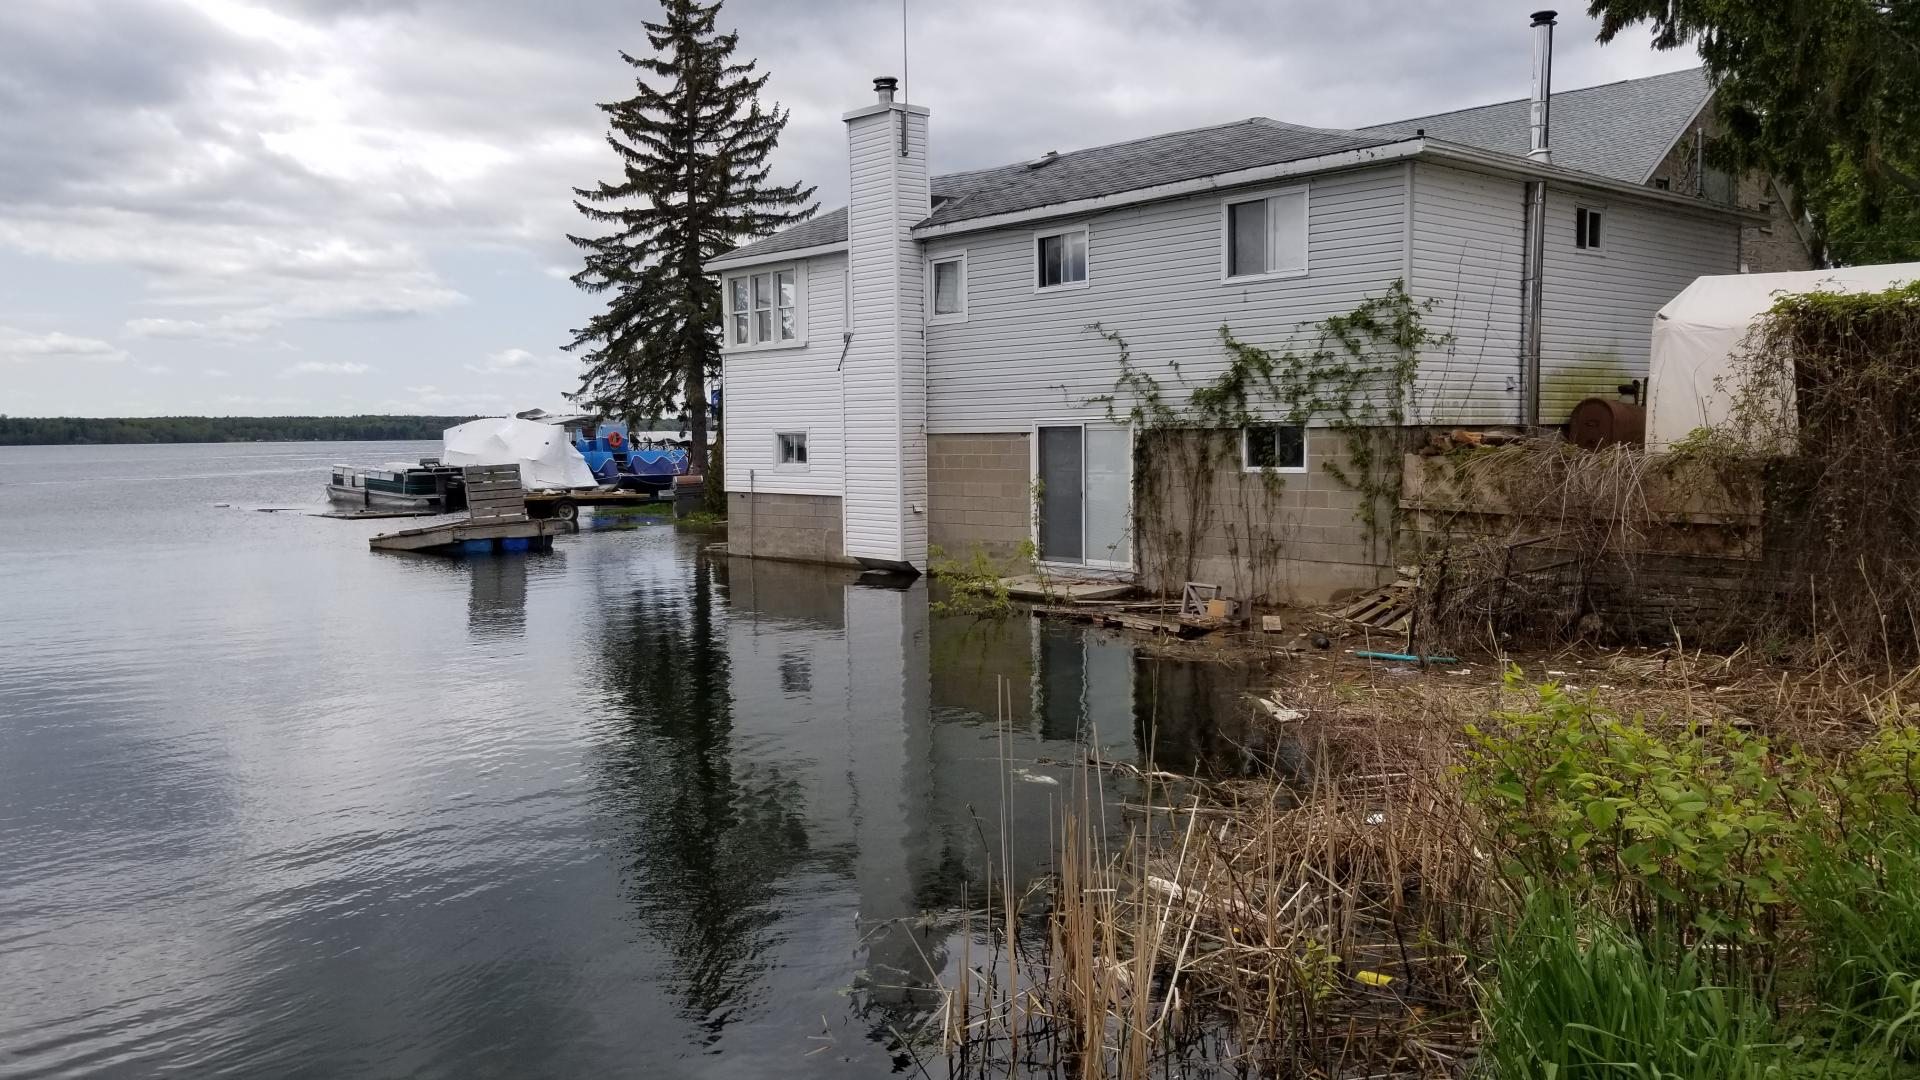 Home on shoreline of Upper St. Lawrence River in Brockville, Ontario, near the end of St  Paul Street. Photo date was May 27, 2019.